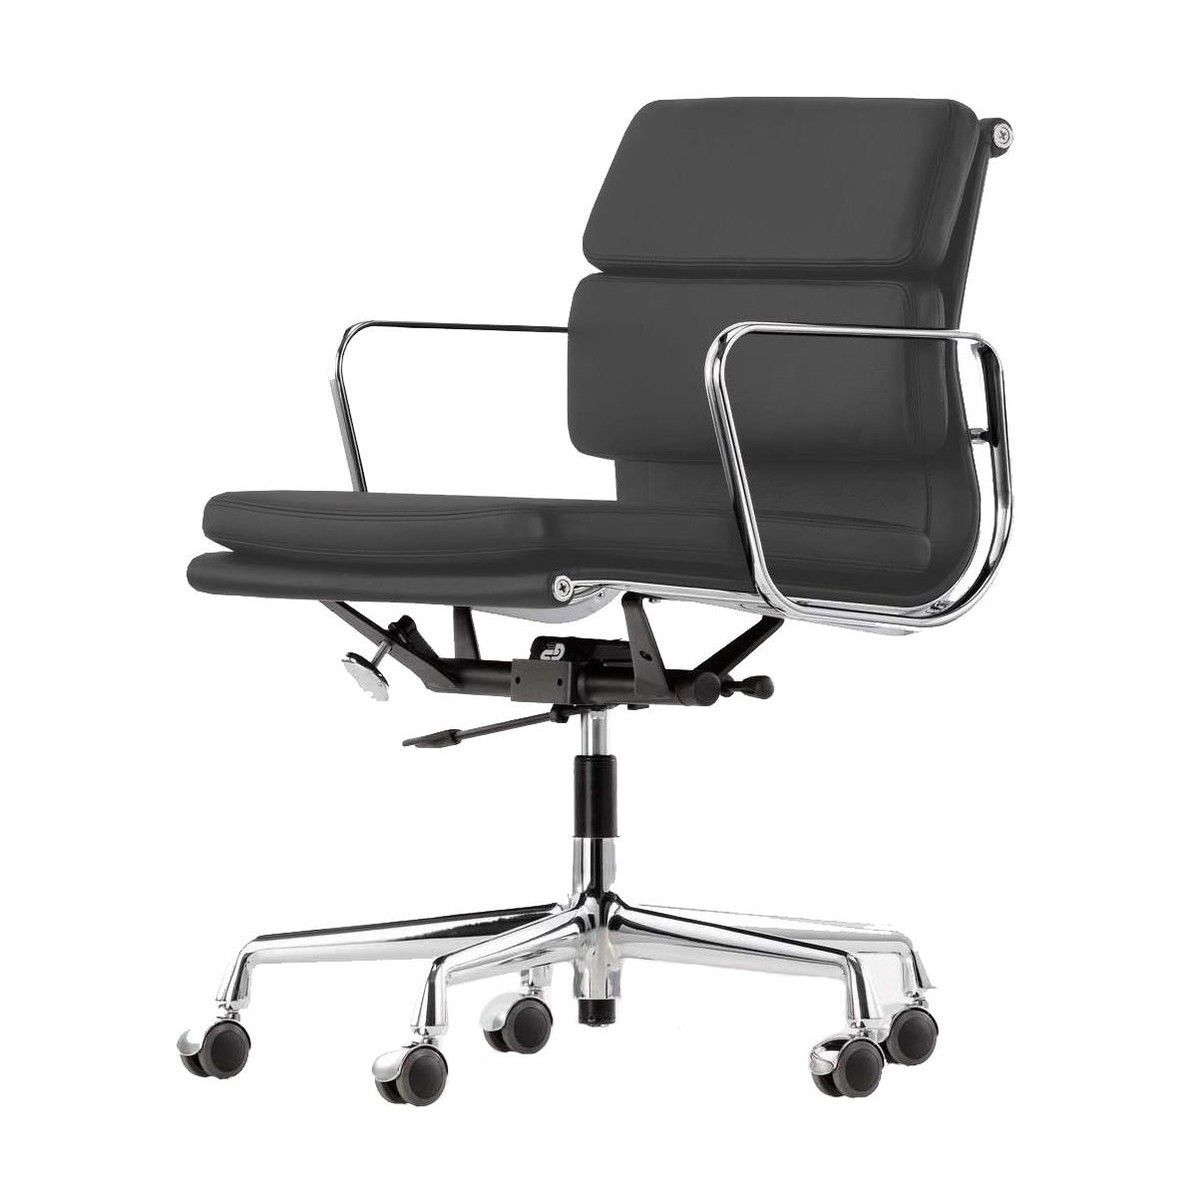 Ea 217 soft pad eames alu chair office chair vitra for Eames schreibtischstuhl